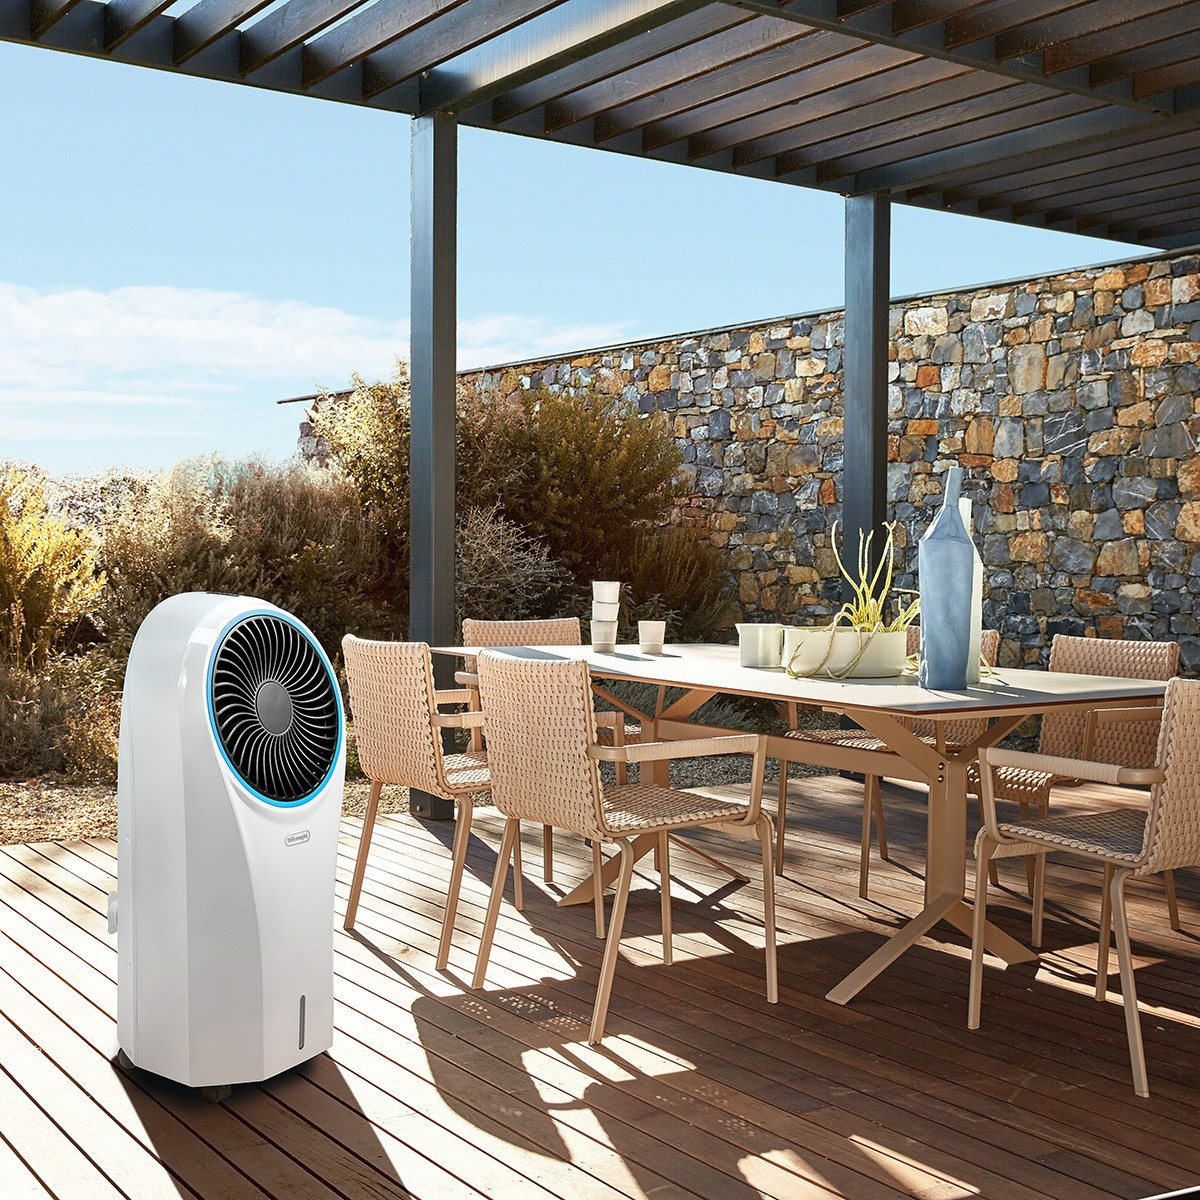 DeLonghi EV250 Portable Evaporative Cooler